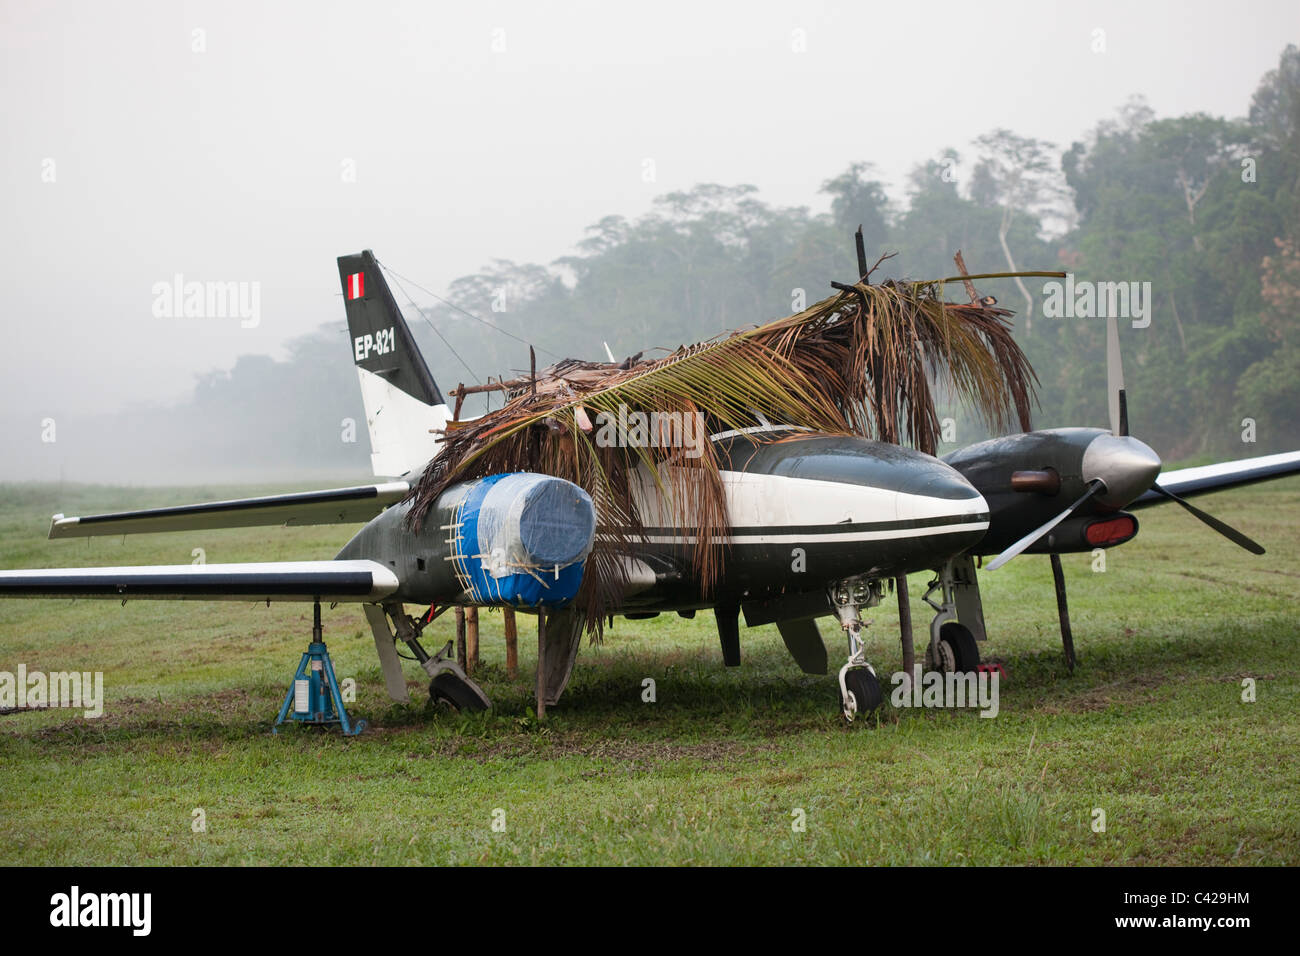 Peru, Boca Manu, Brooken airplane on landing strip. - Stock Image